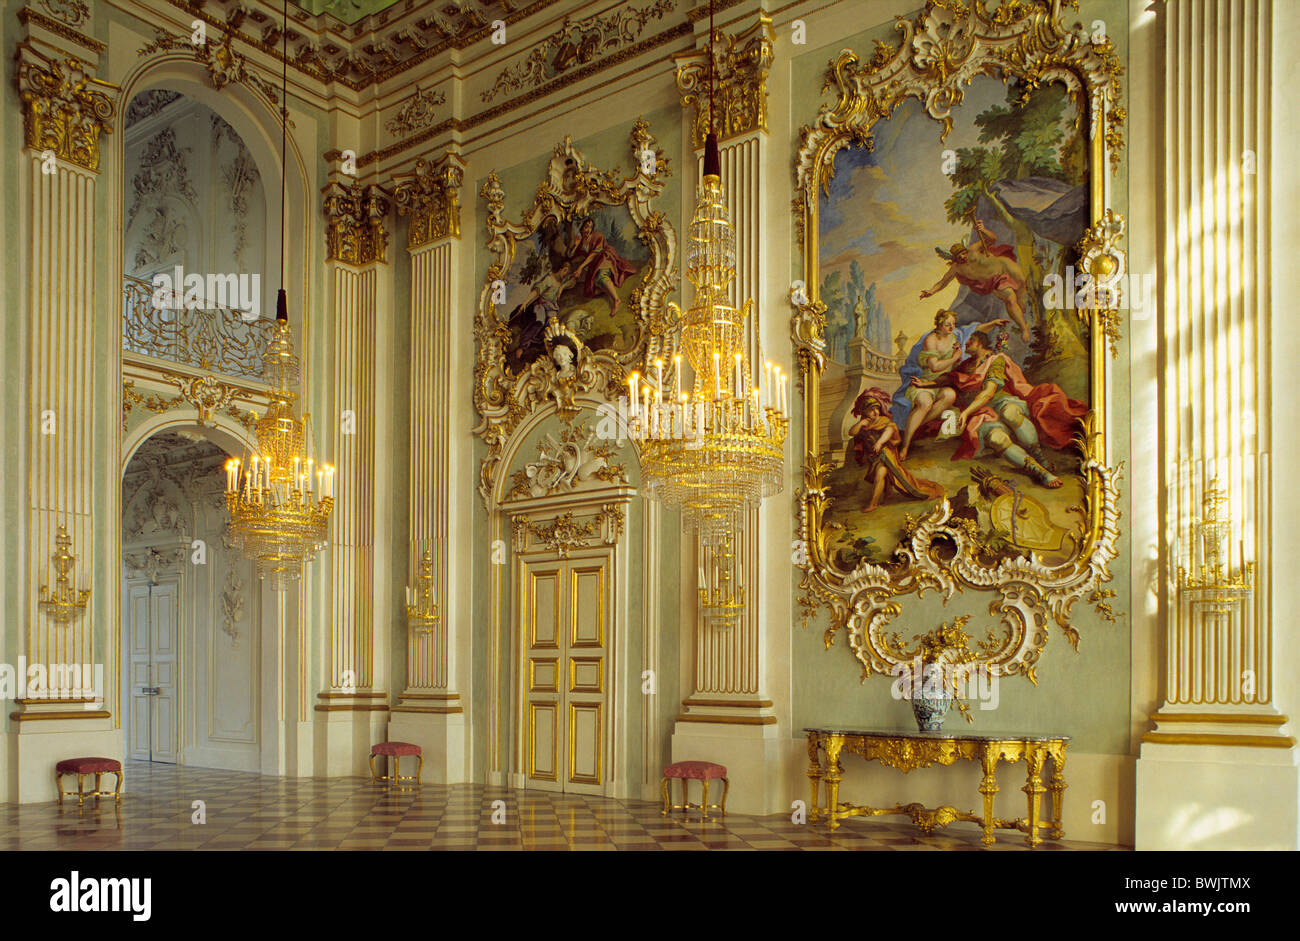 Delicieux Europe, Germany, Bavaria, Munich, Nymphenburg Palace, Interior View Of The  Hall